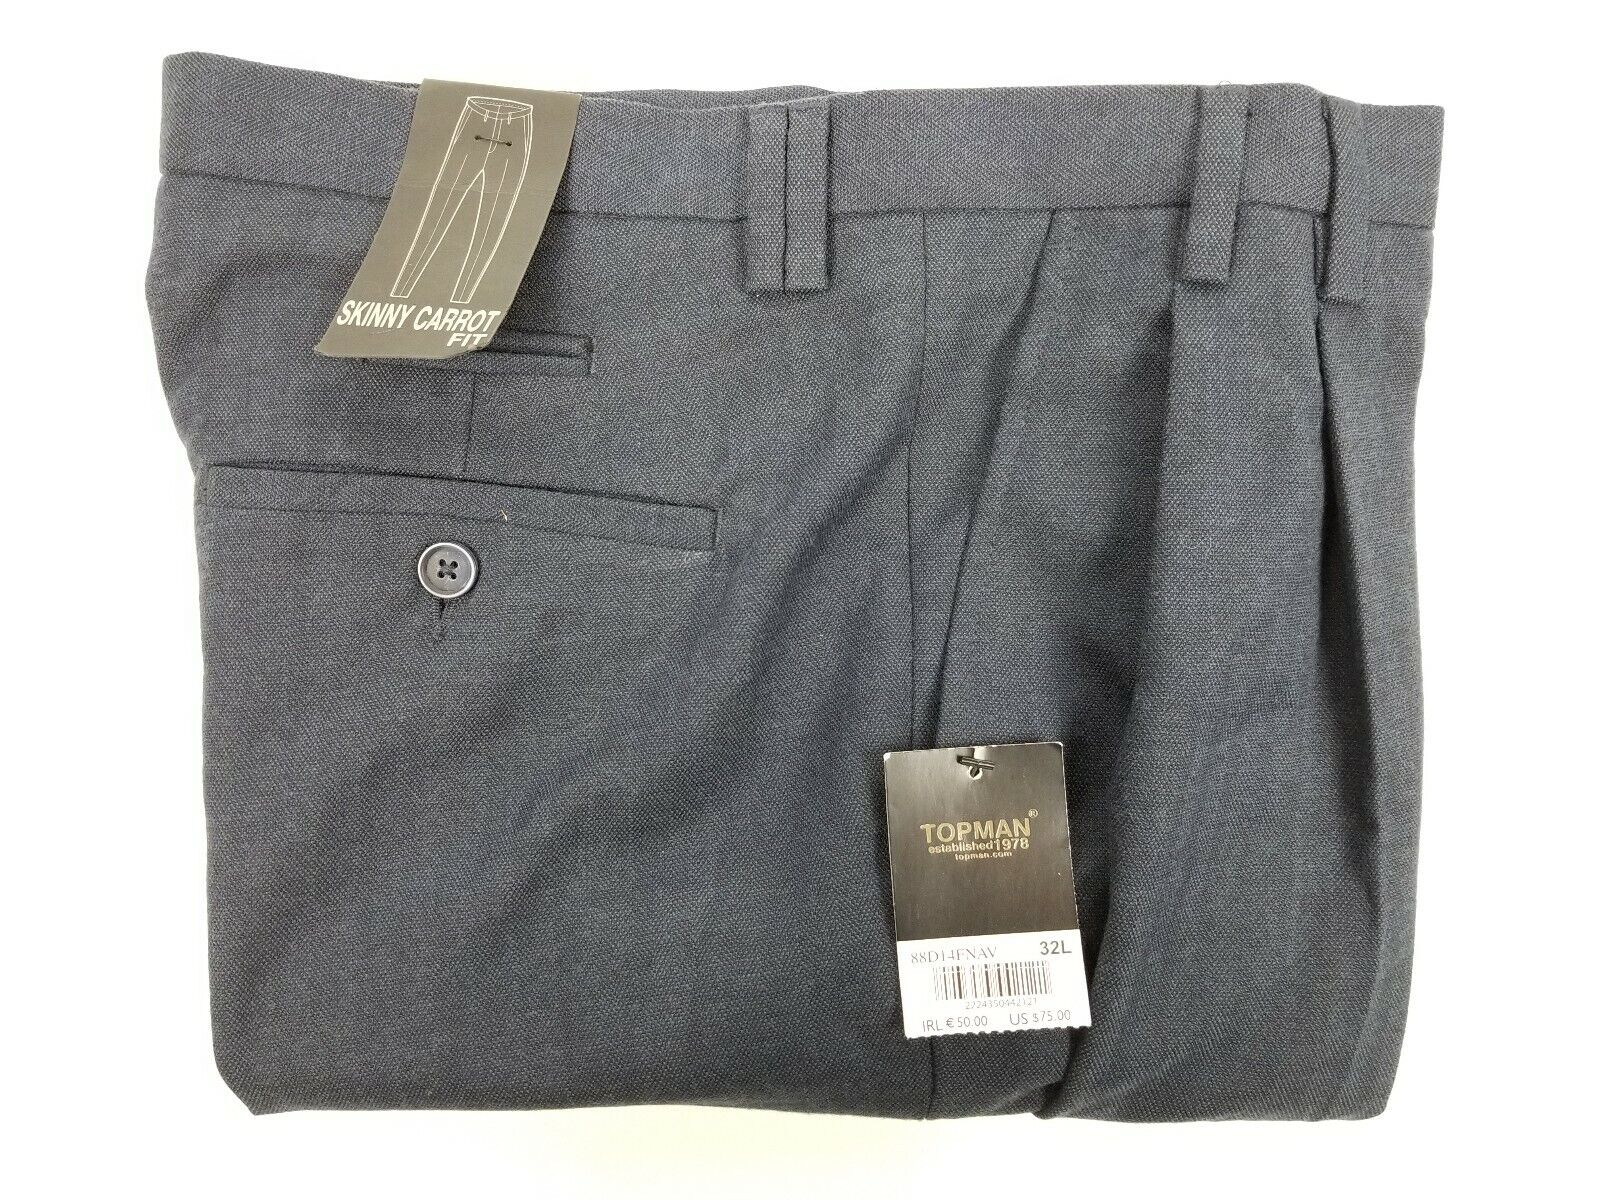 New TOPMAN Men's Pants 33x32 bluee Skinny Carred Fit Twin Pleat Tapered Cuffed